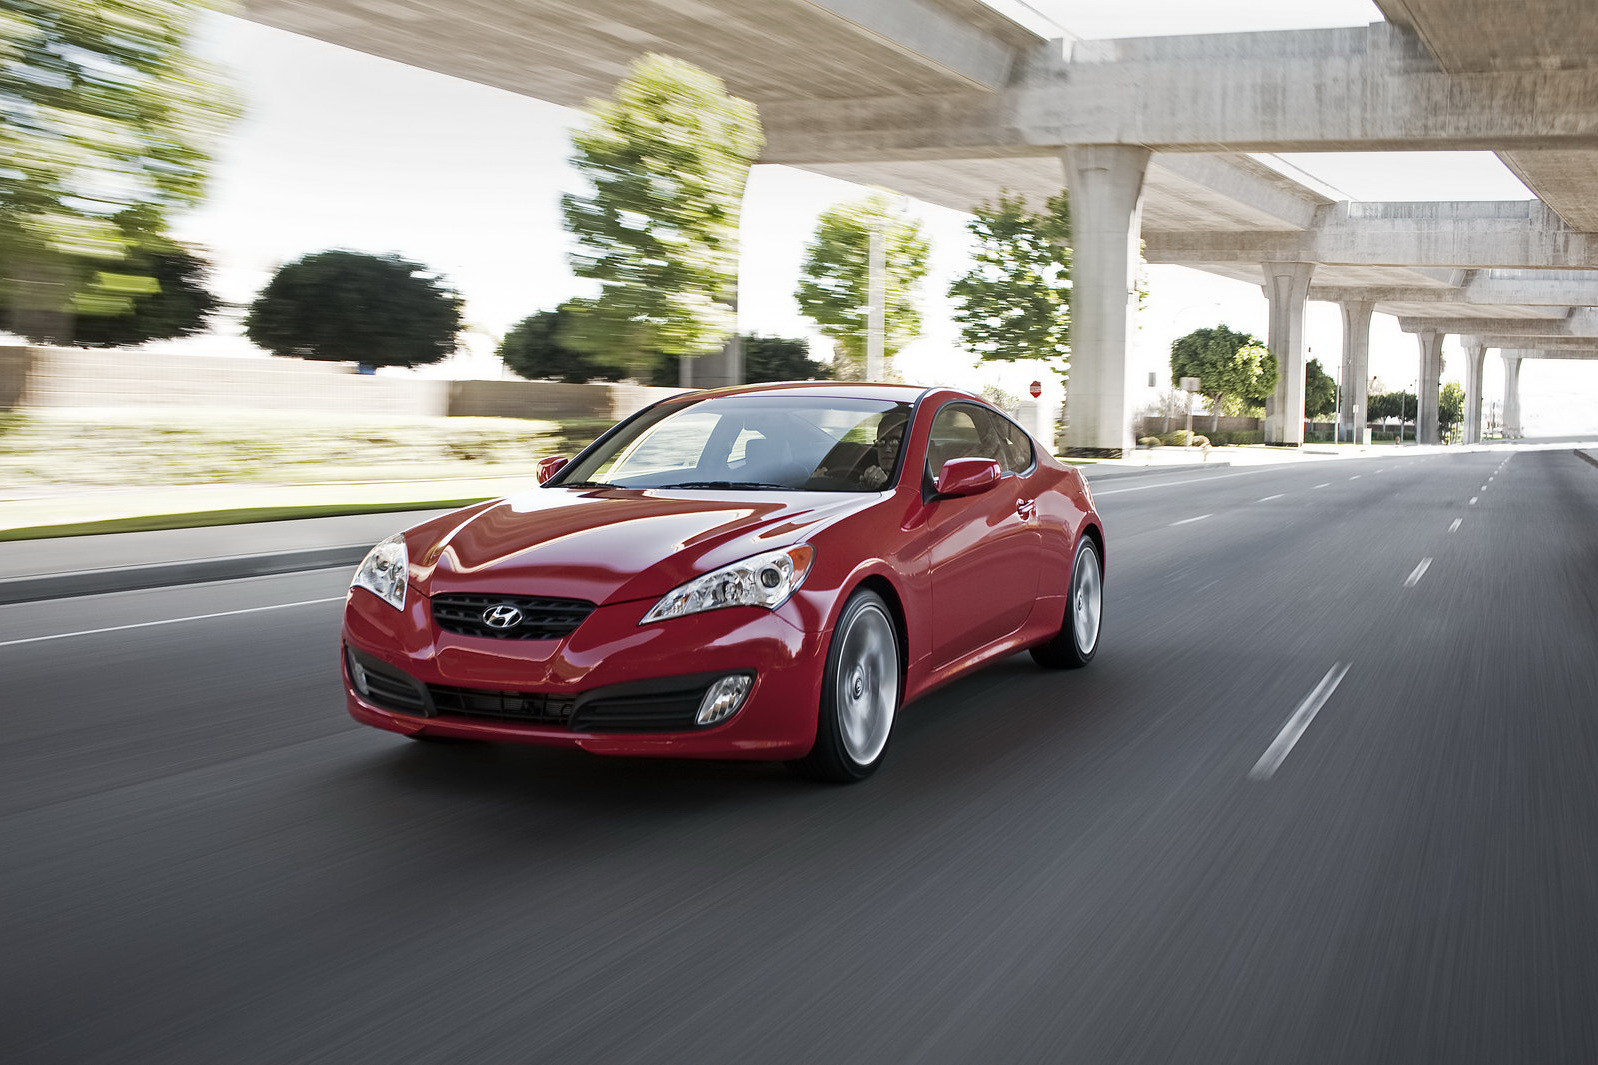 hyundai cars news genesis coupe launch early 2011. Black Bedroom Furniture Sets. Home Design Ideas